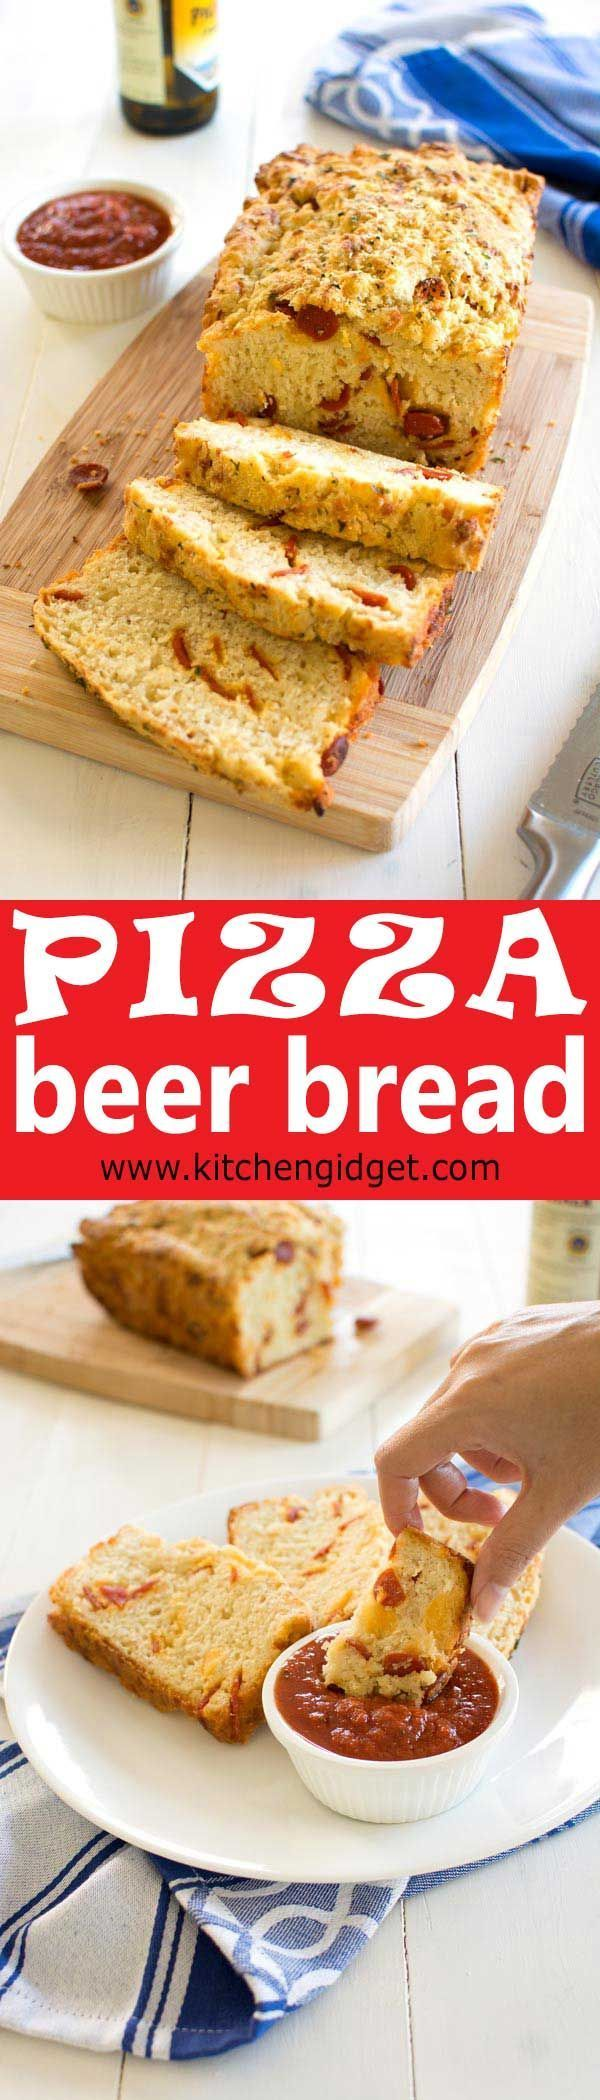 How To Make Easy Pizza Beer Bread With Cheese And Pepperoni Pizza Beer Bread Recipe